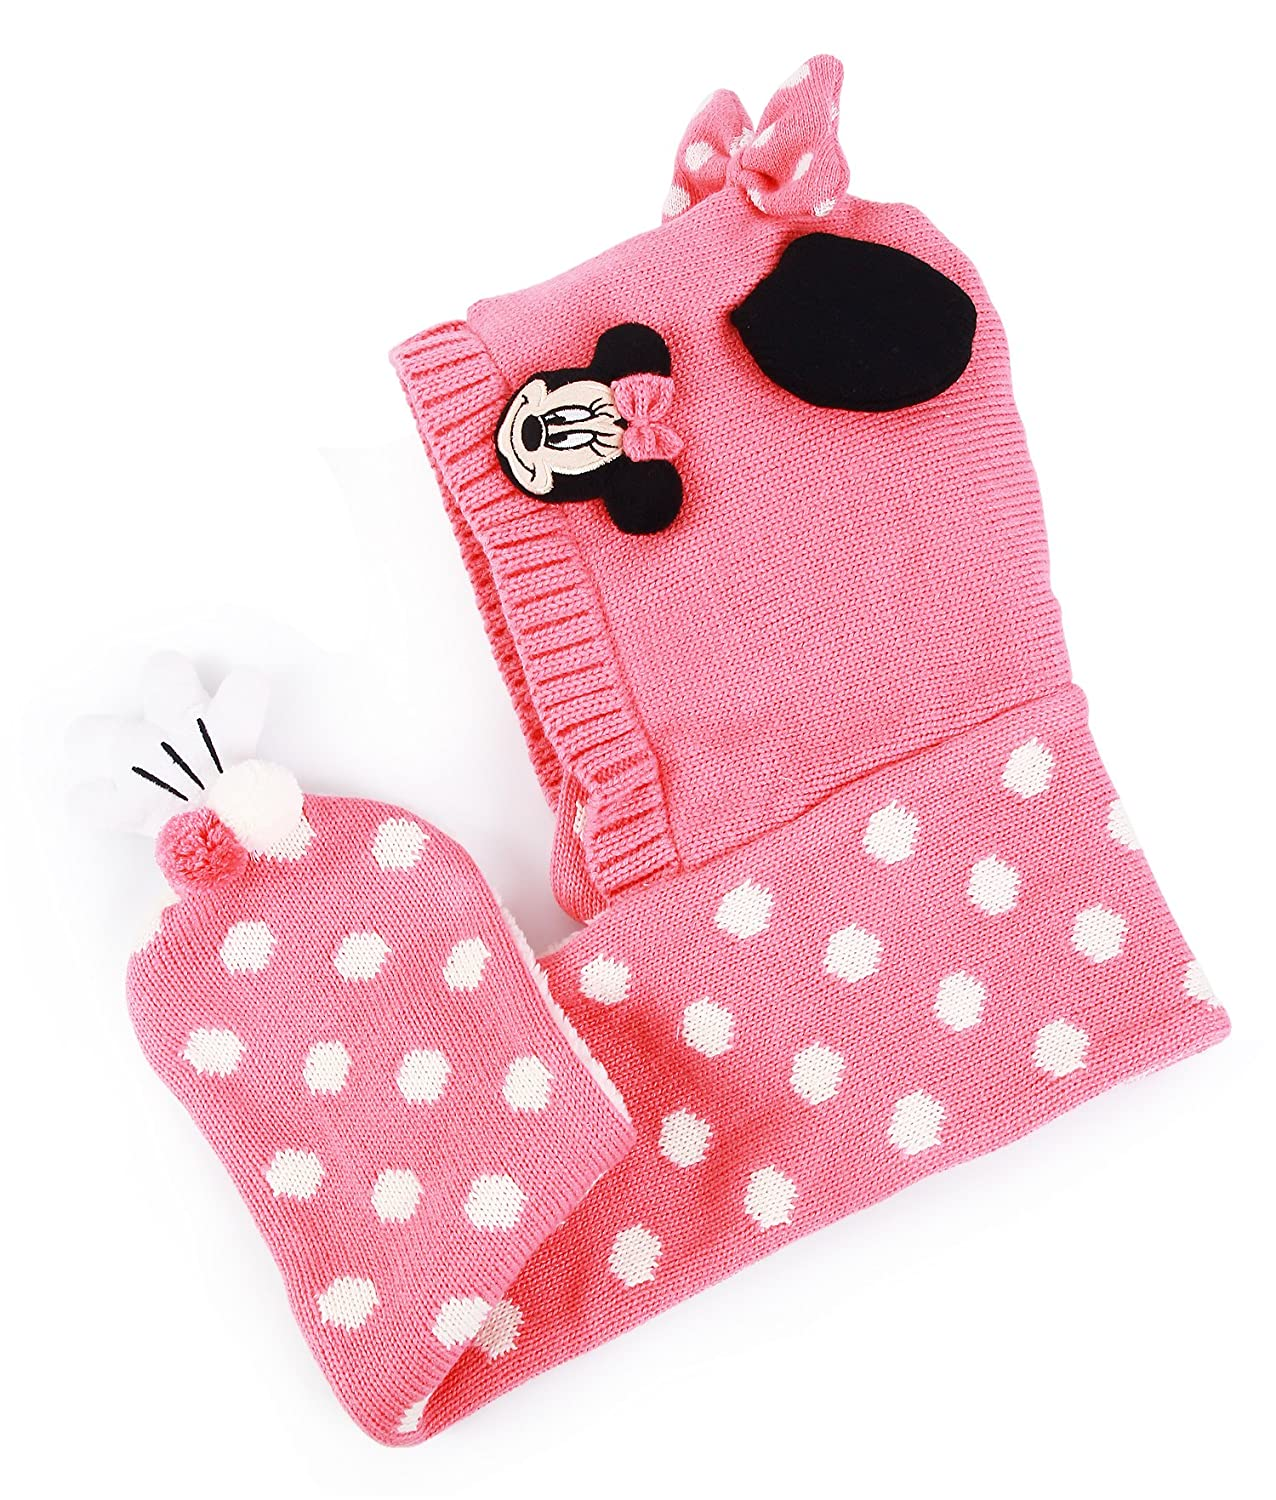 Disney Minnie Mouse Finger Hood Warmer Knitted Long Scarves Shawl for Girls (Pink)